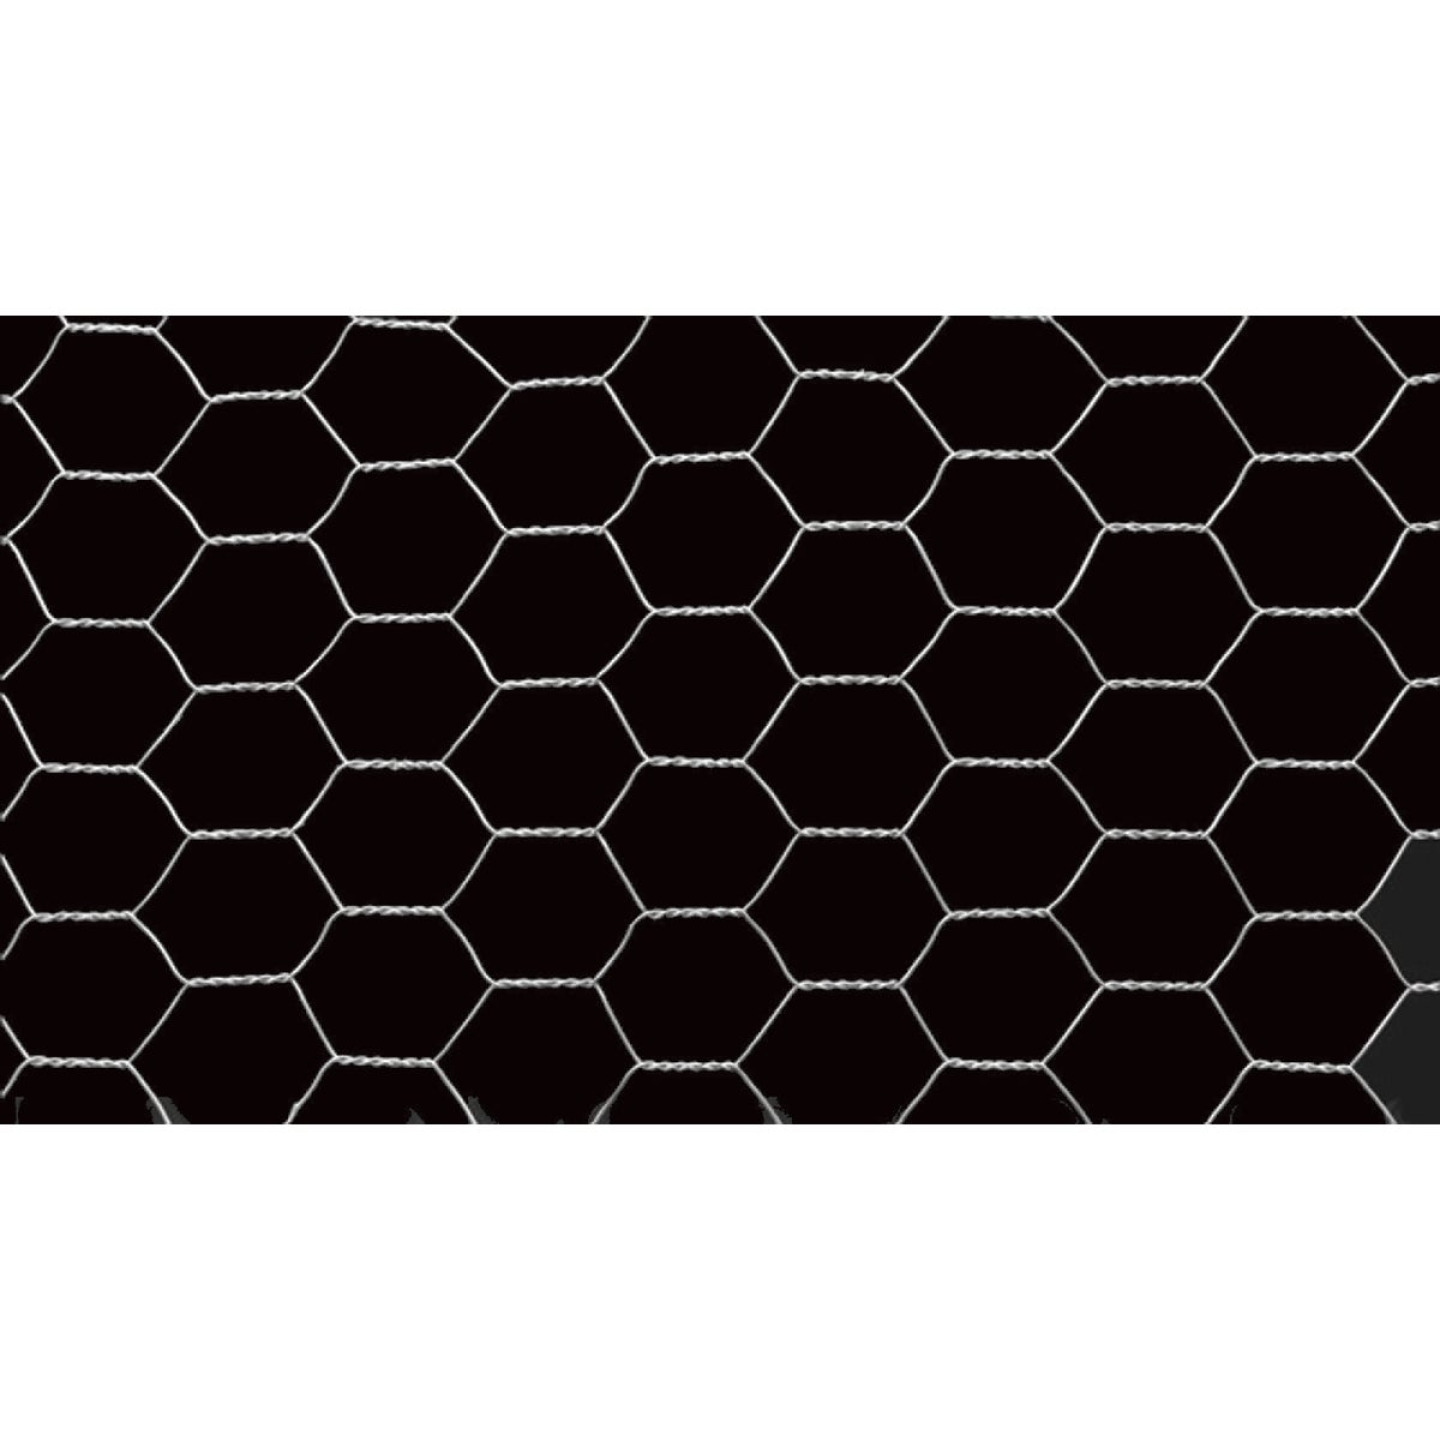 1/2 In. x 36 In. H. x 10 Ft. L. Hexagonal Wire Poultry Netting Image 4